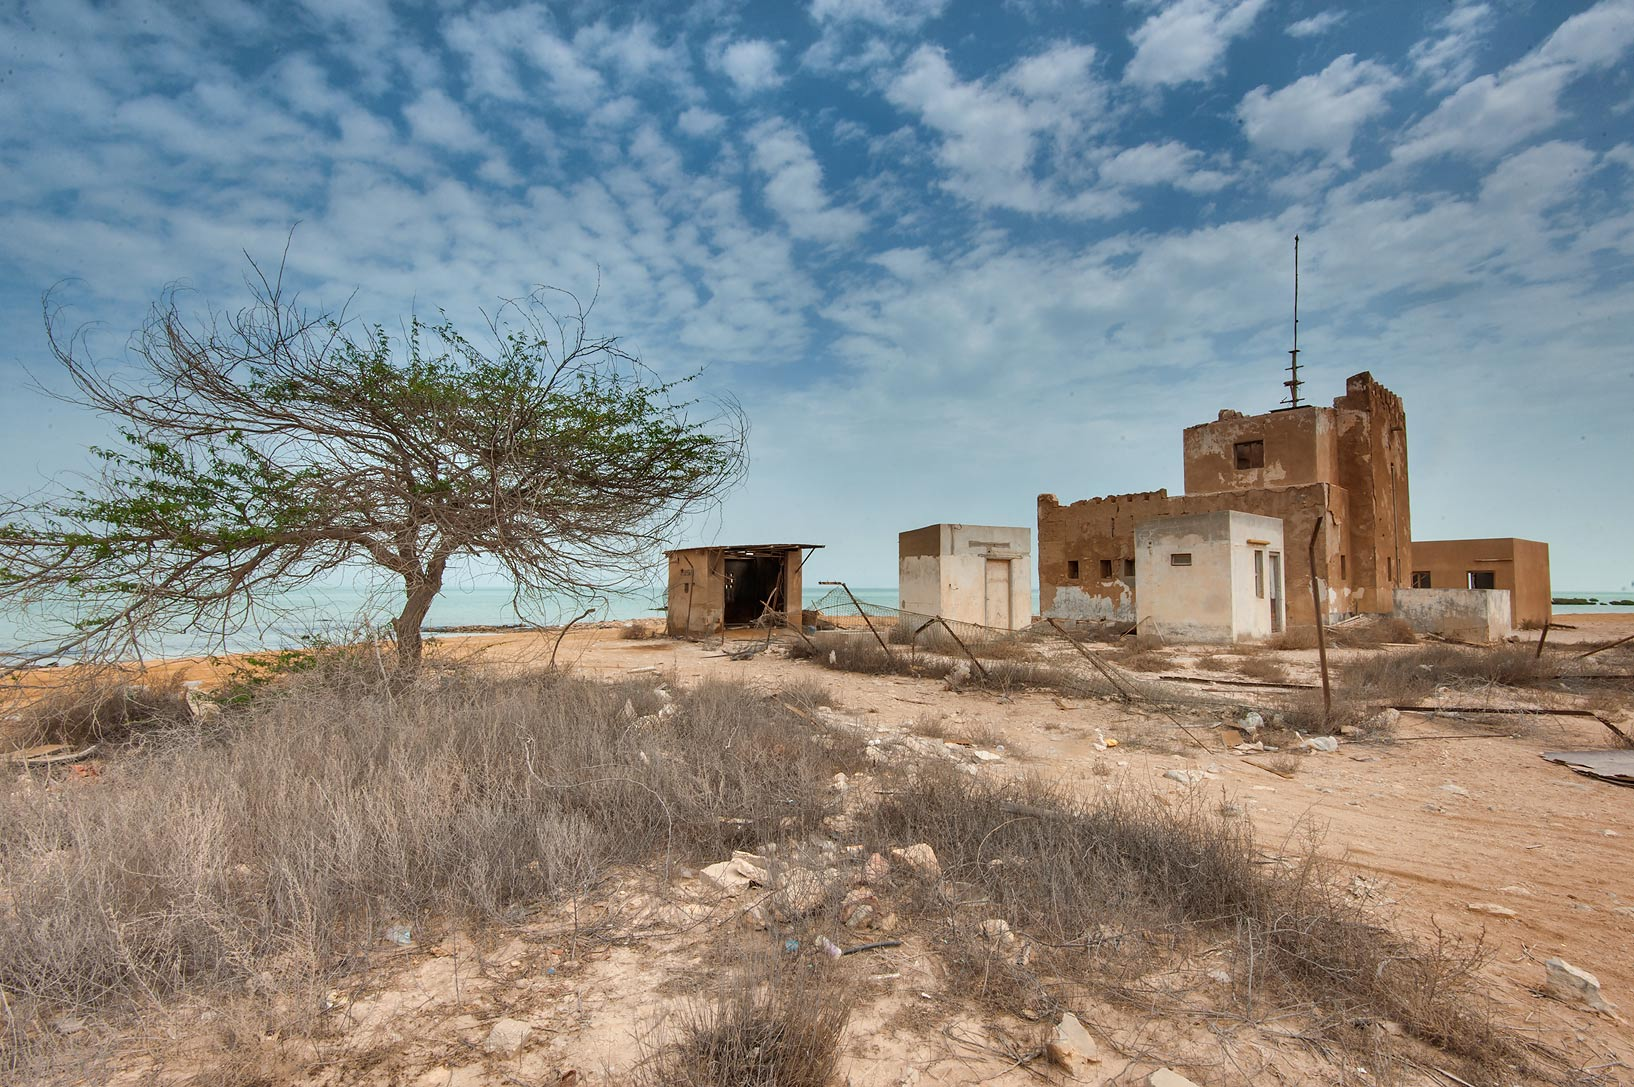 Backyard of Police Station (Coast Guard) in a village of Al Areesh (Arish). Northern Qatar